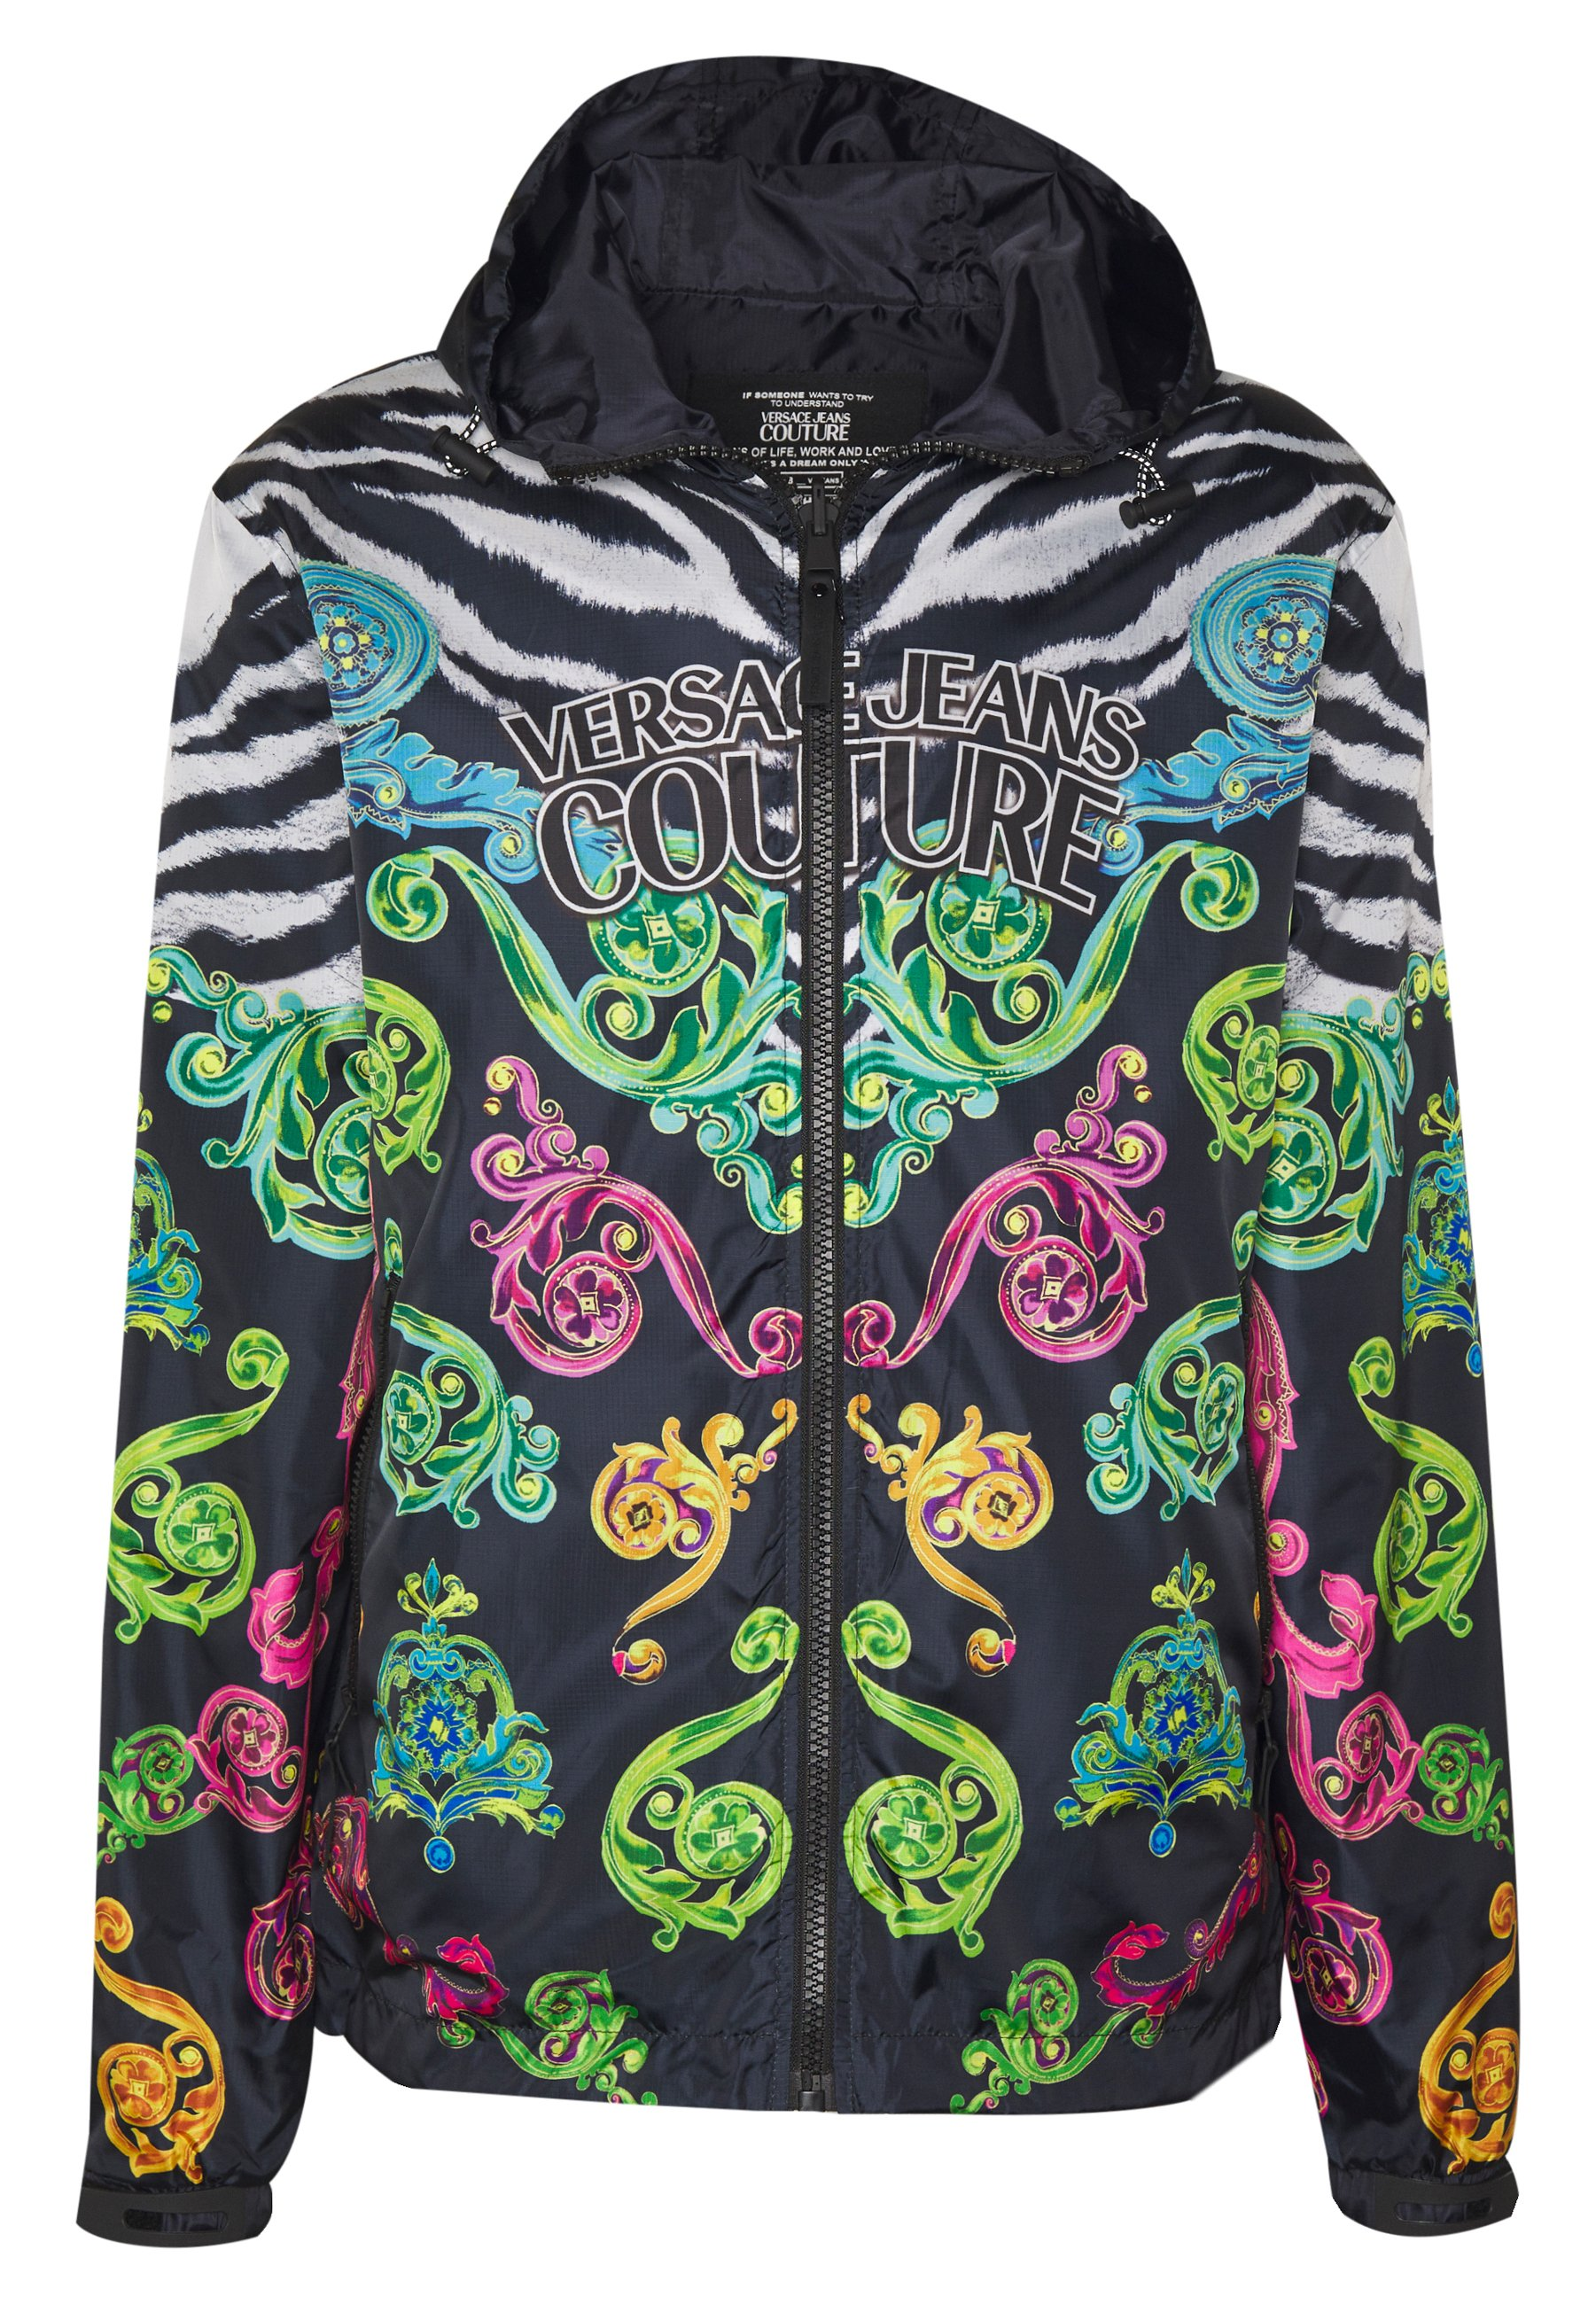 Versace Jeans Couture Jacket Front Logo Reversible - Tunn Jacka Black